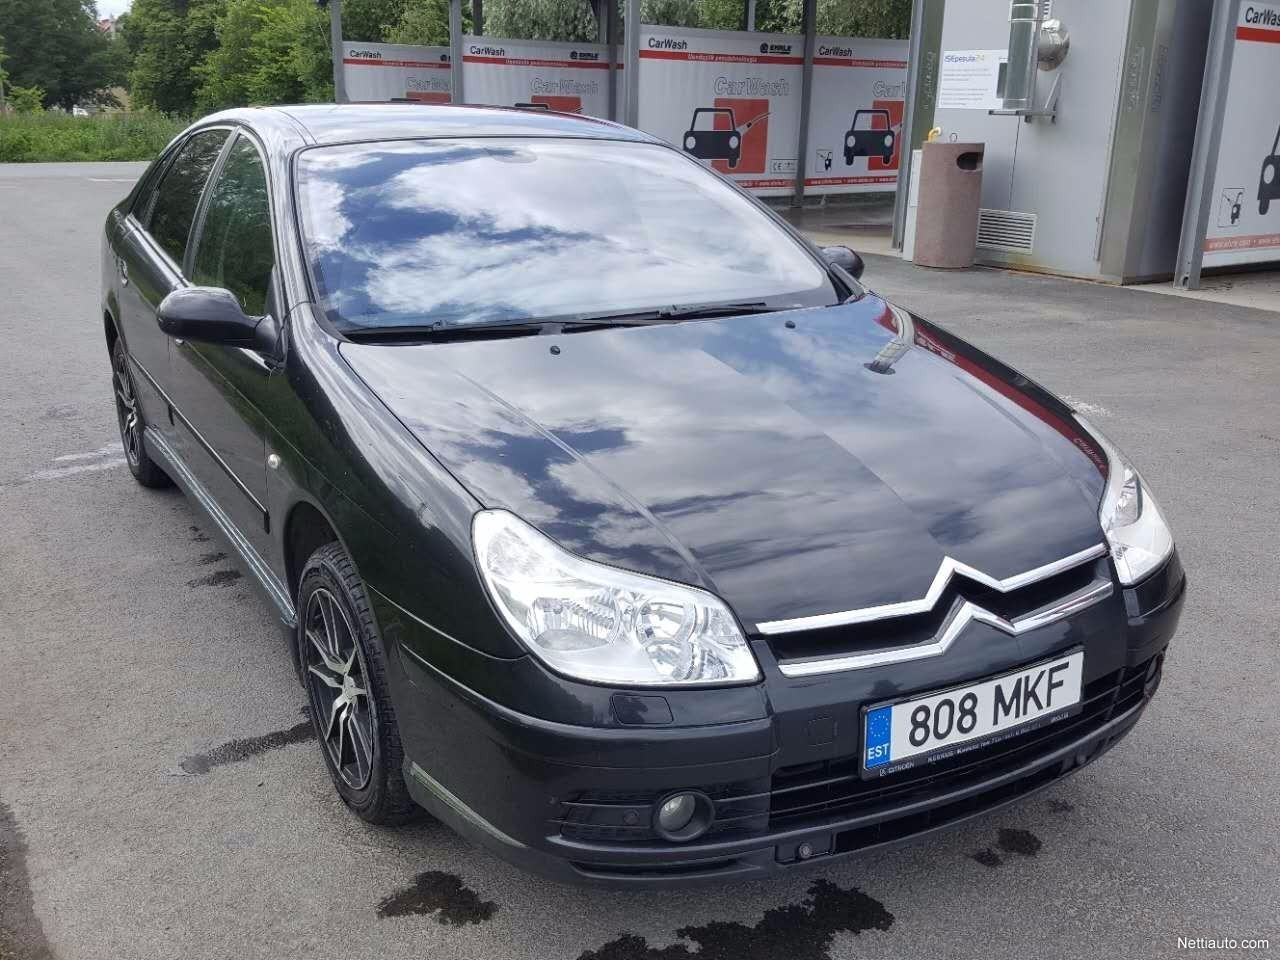 citroen c5 2 0i 16v confort sedan sedan 2007 used vehicle nettiauto. Black Bedroom Furniture Sets. Home Design Ideas